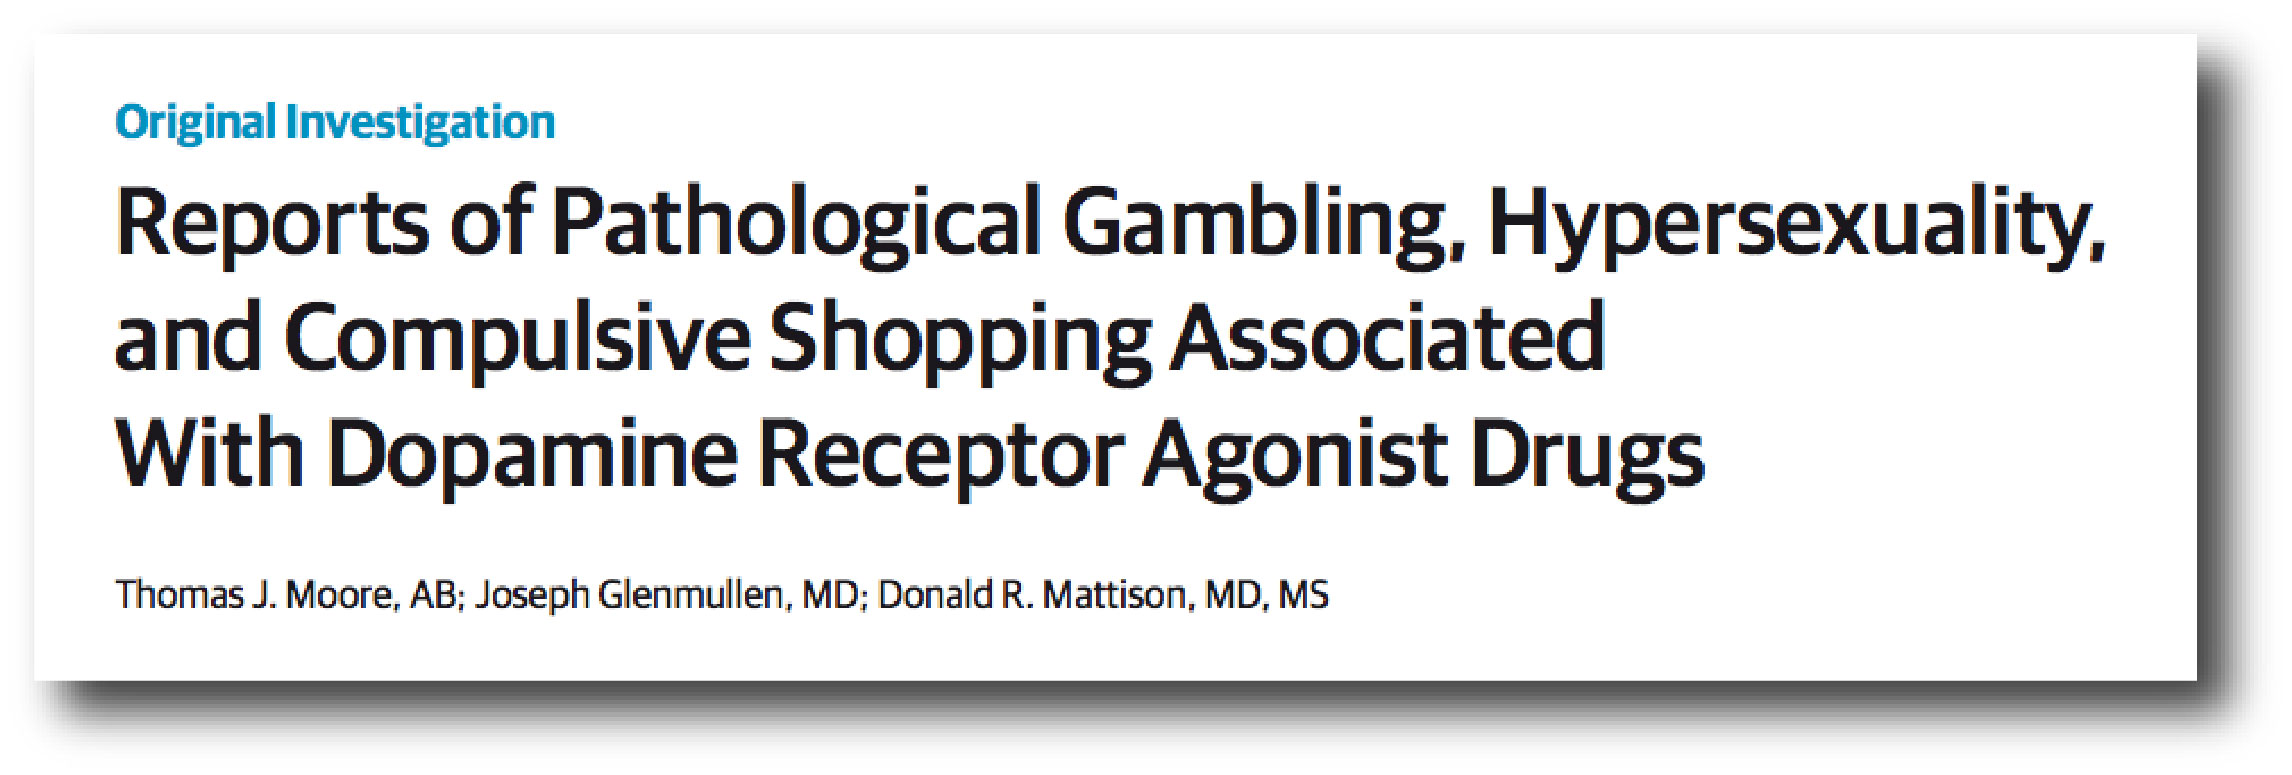 a study on pathological gambling as an addiction Distorted thinking in gambling addiction: highlight the overlap between pathological gambling and drug addiction a new study found that gambling in any.